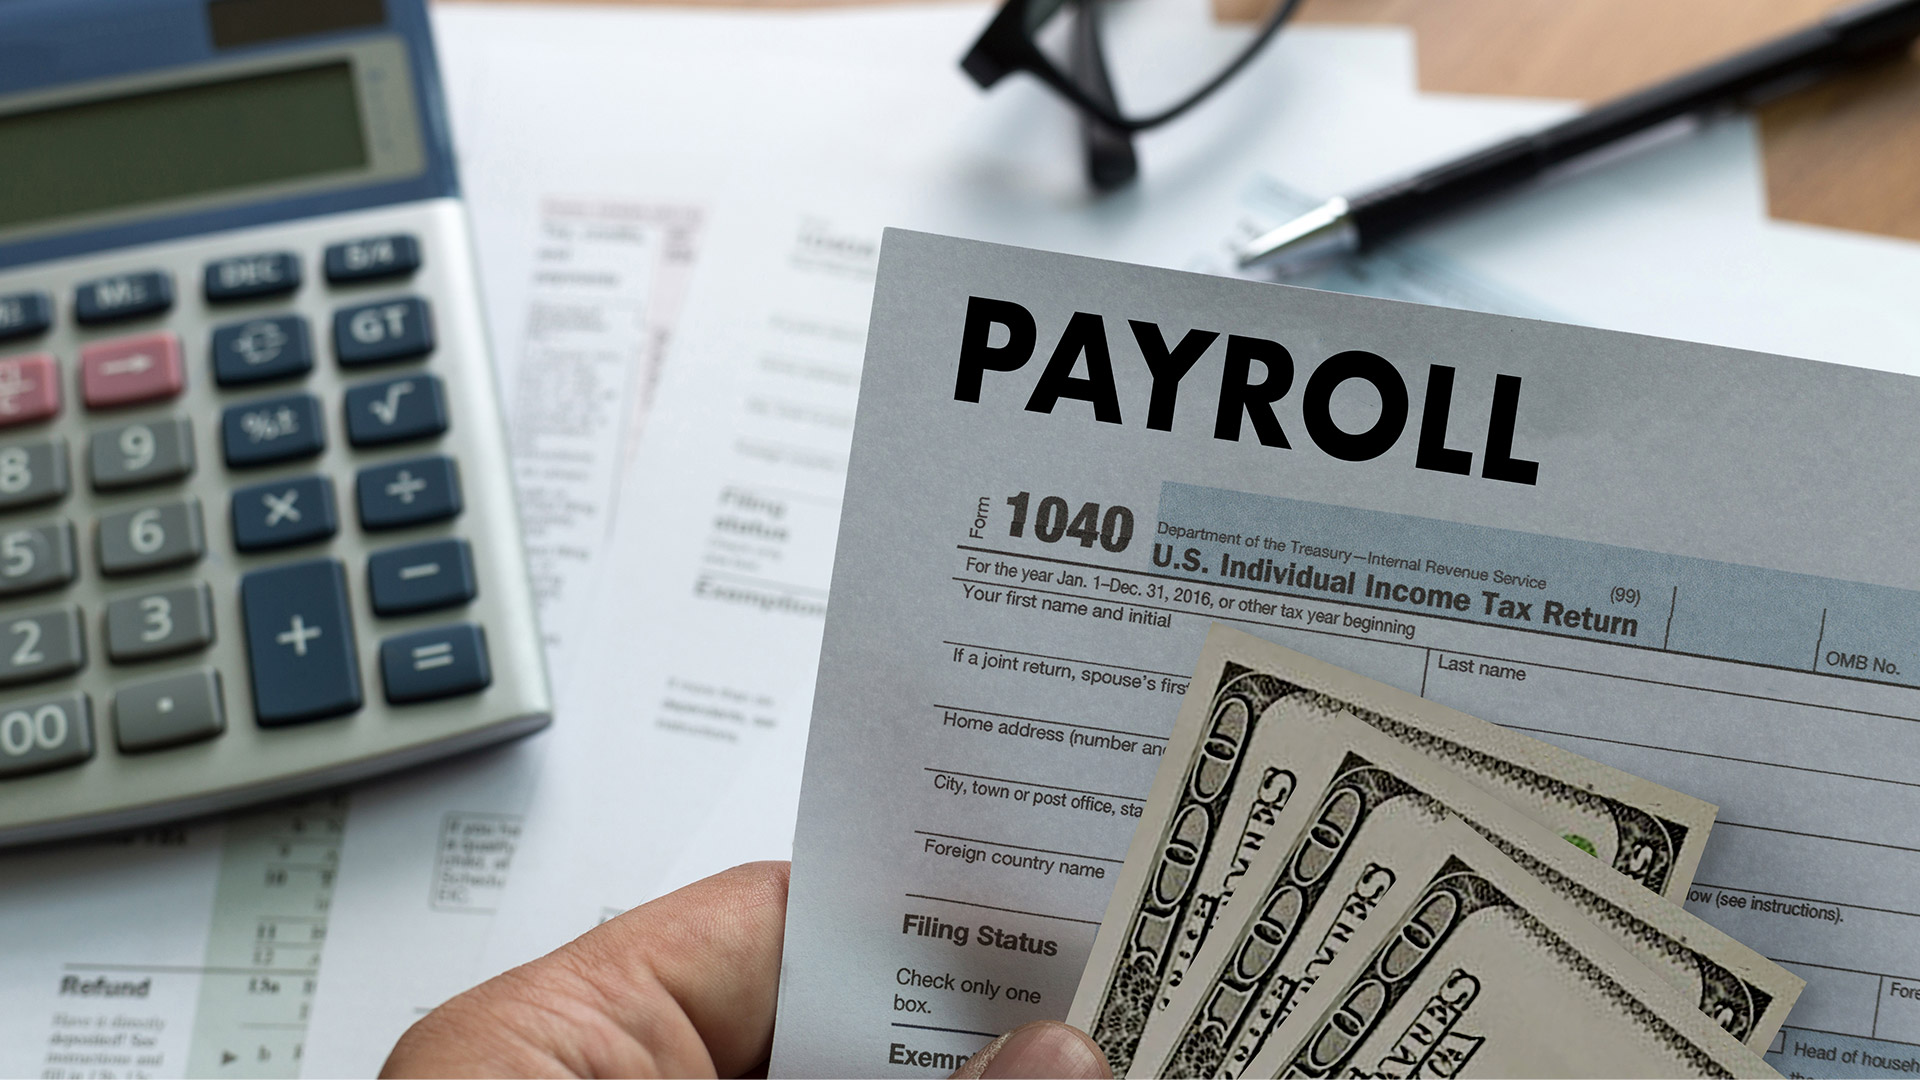 Payroll industry